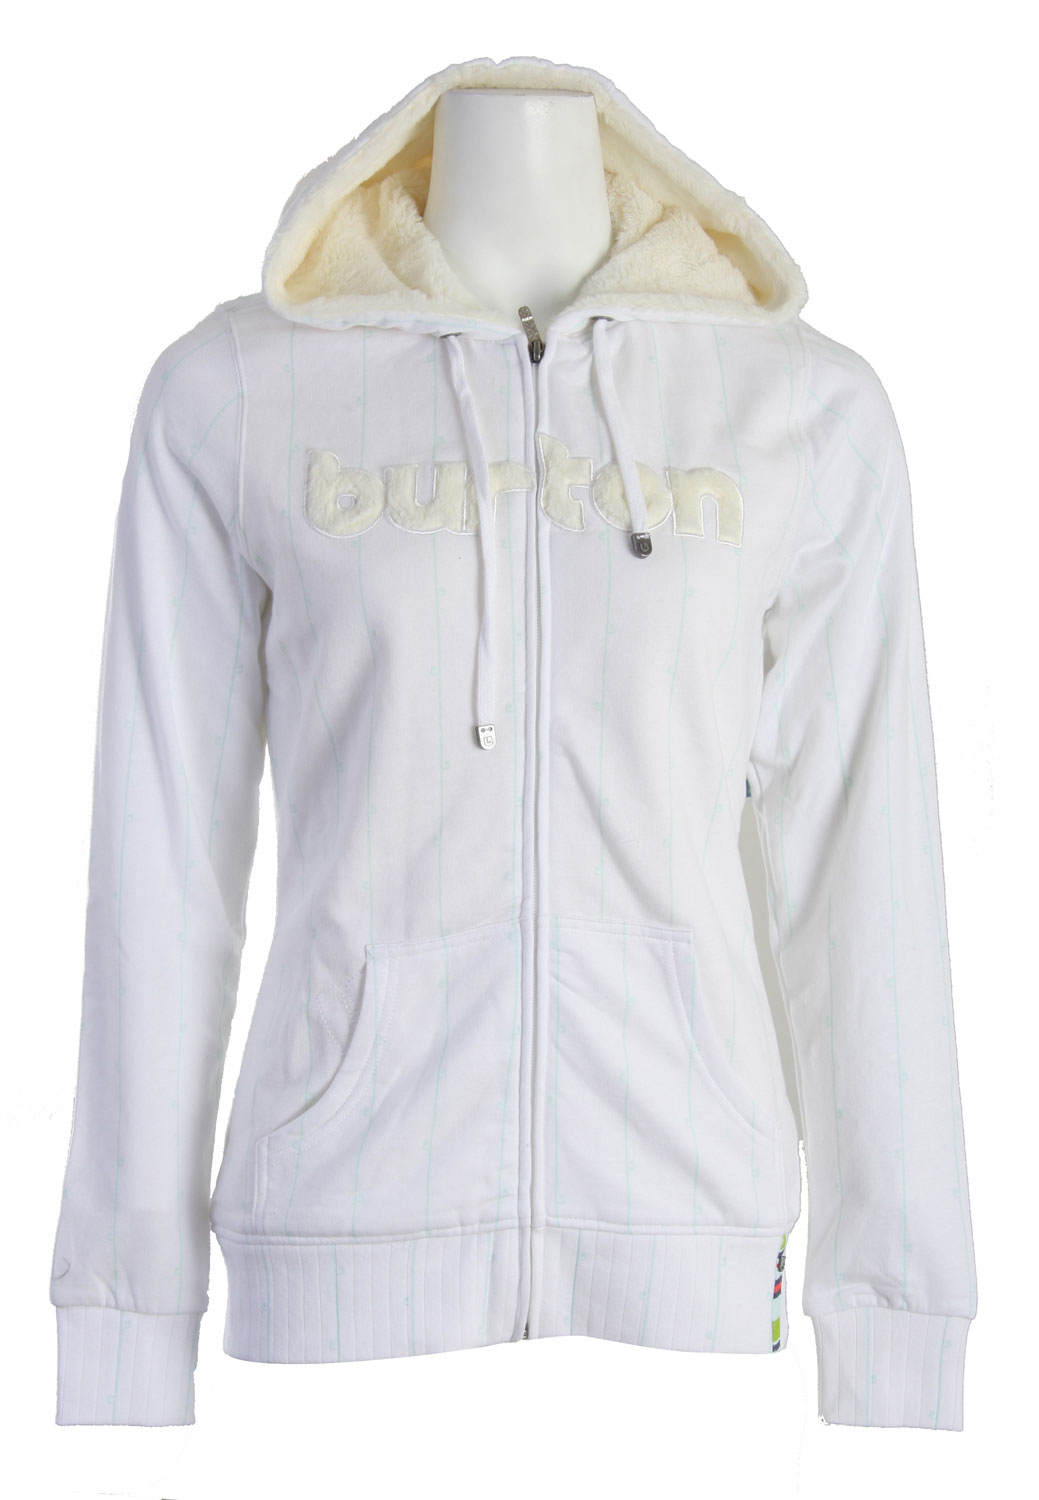 Snowboard The Burton Premier Full Zip Hoodie. 80% Cotton, 20% Polyester Brushed Fleece - $40.95